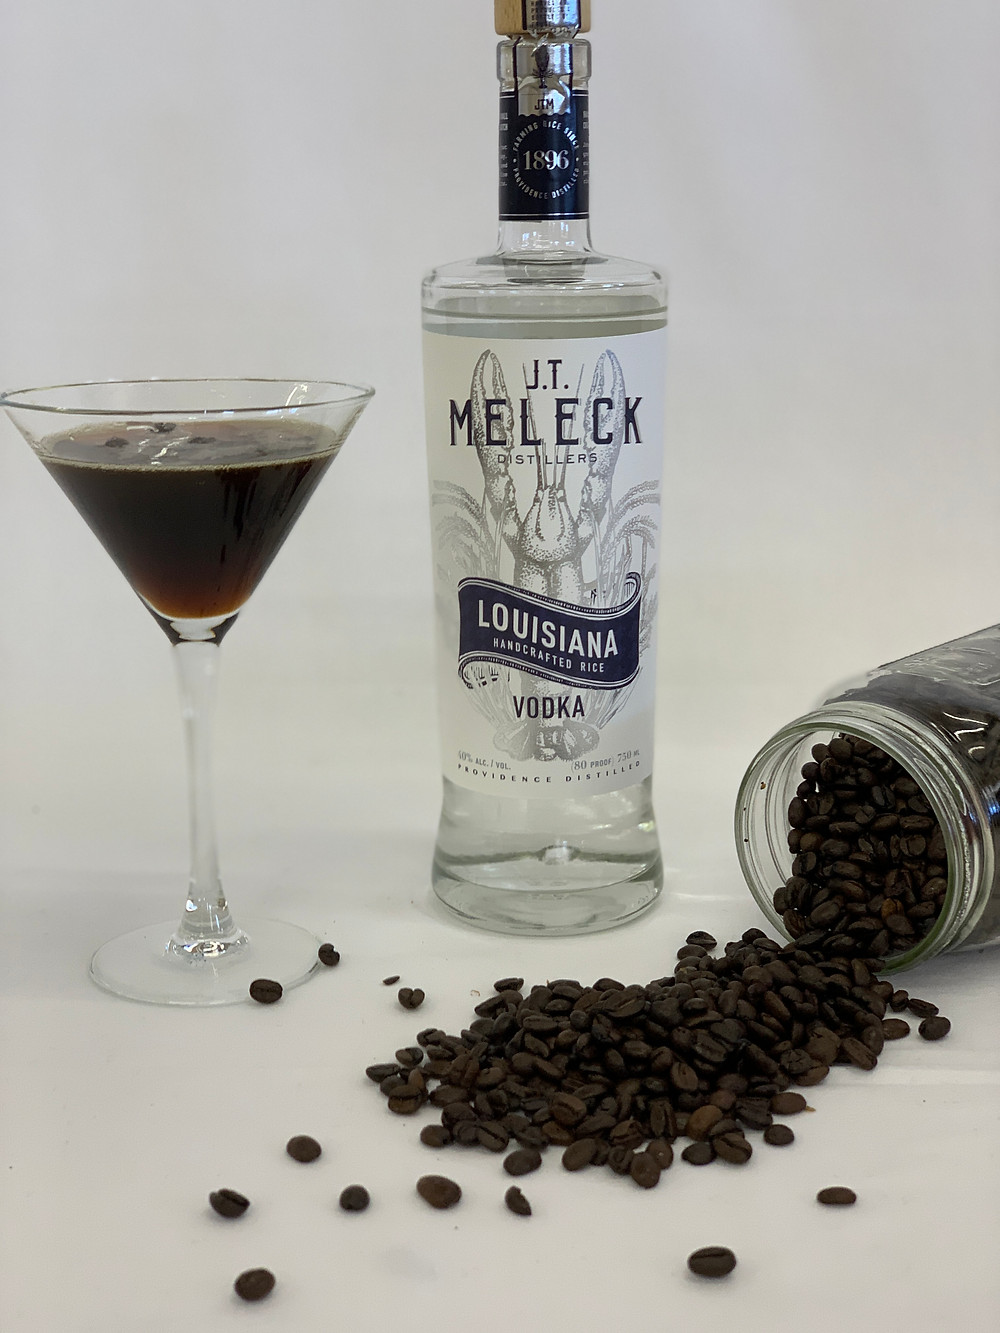 Espresso martini made with JT Meleck Vodka